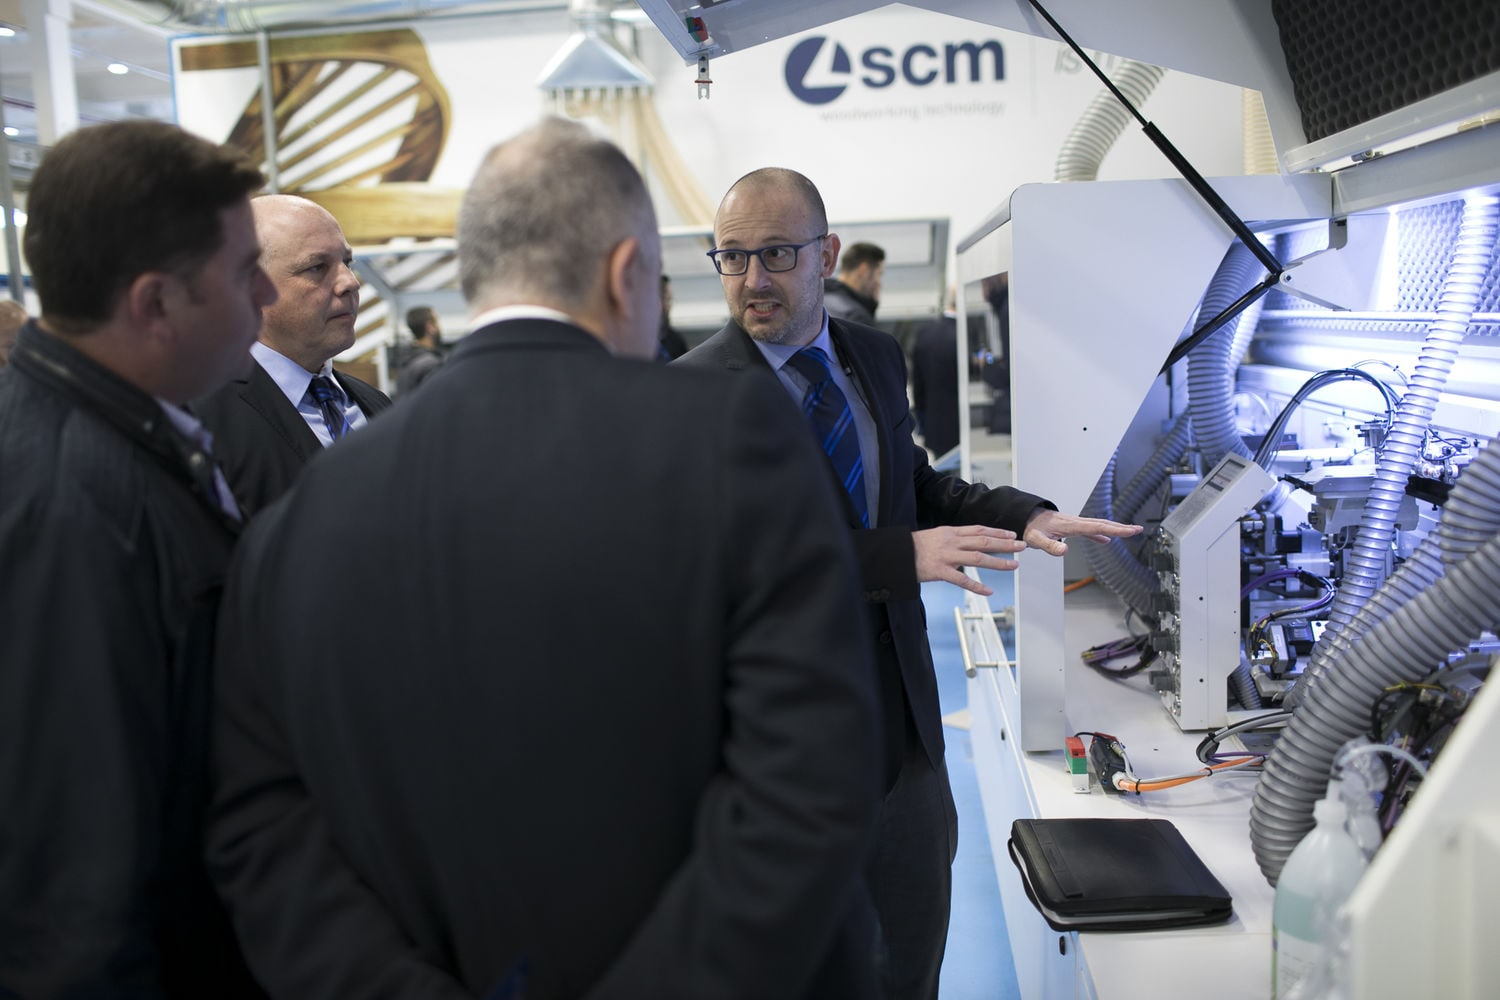 """On the Leading Edgebanding"": excellent results at the SCM event"